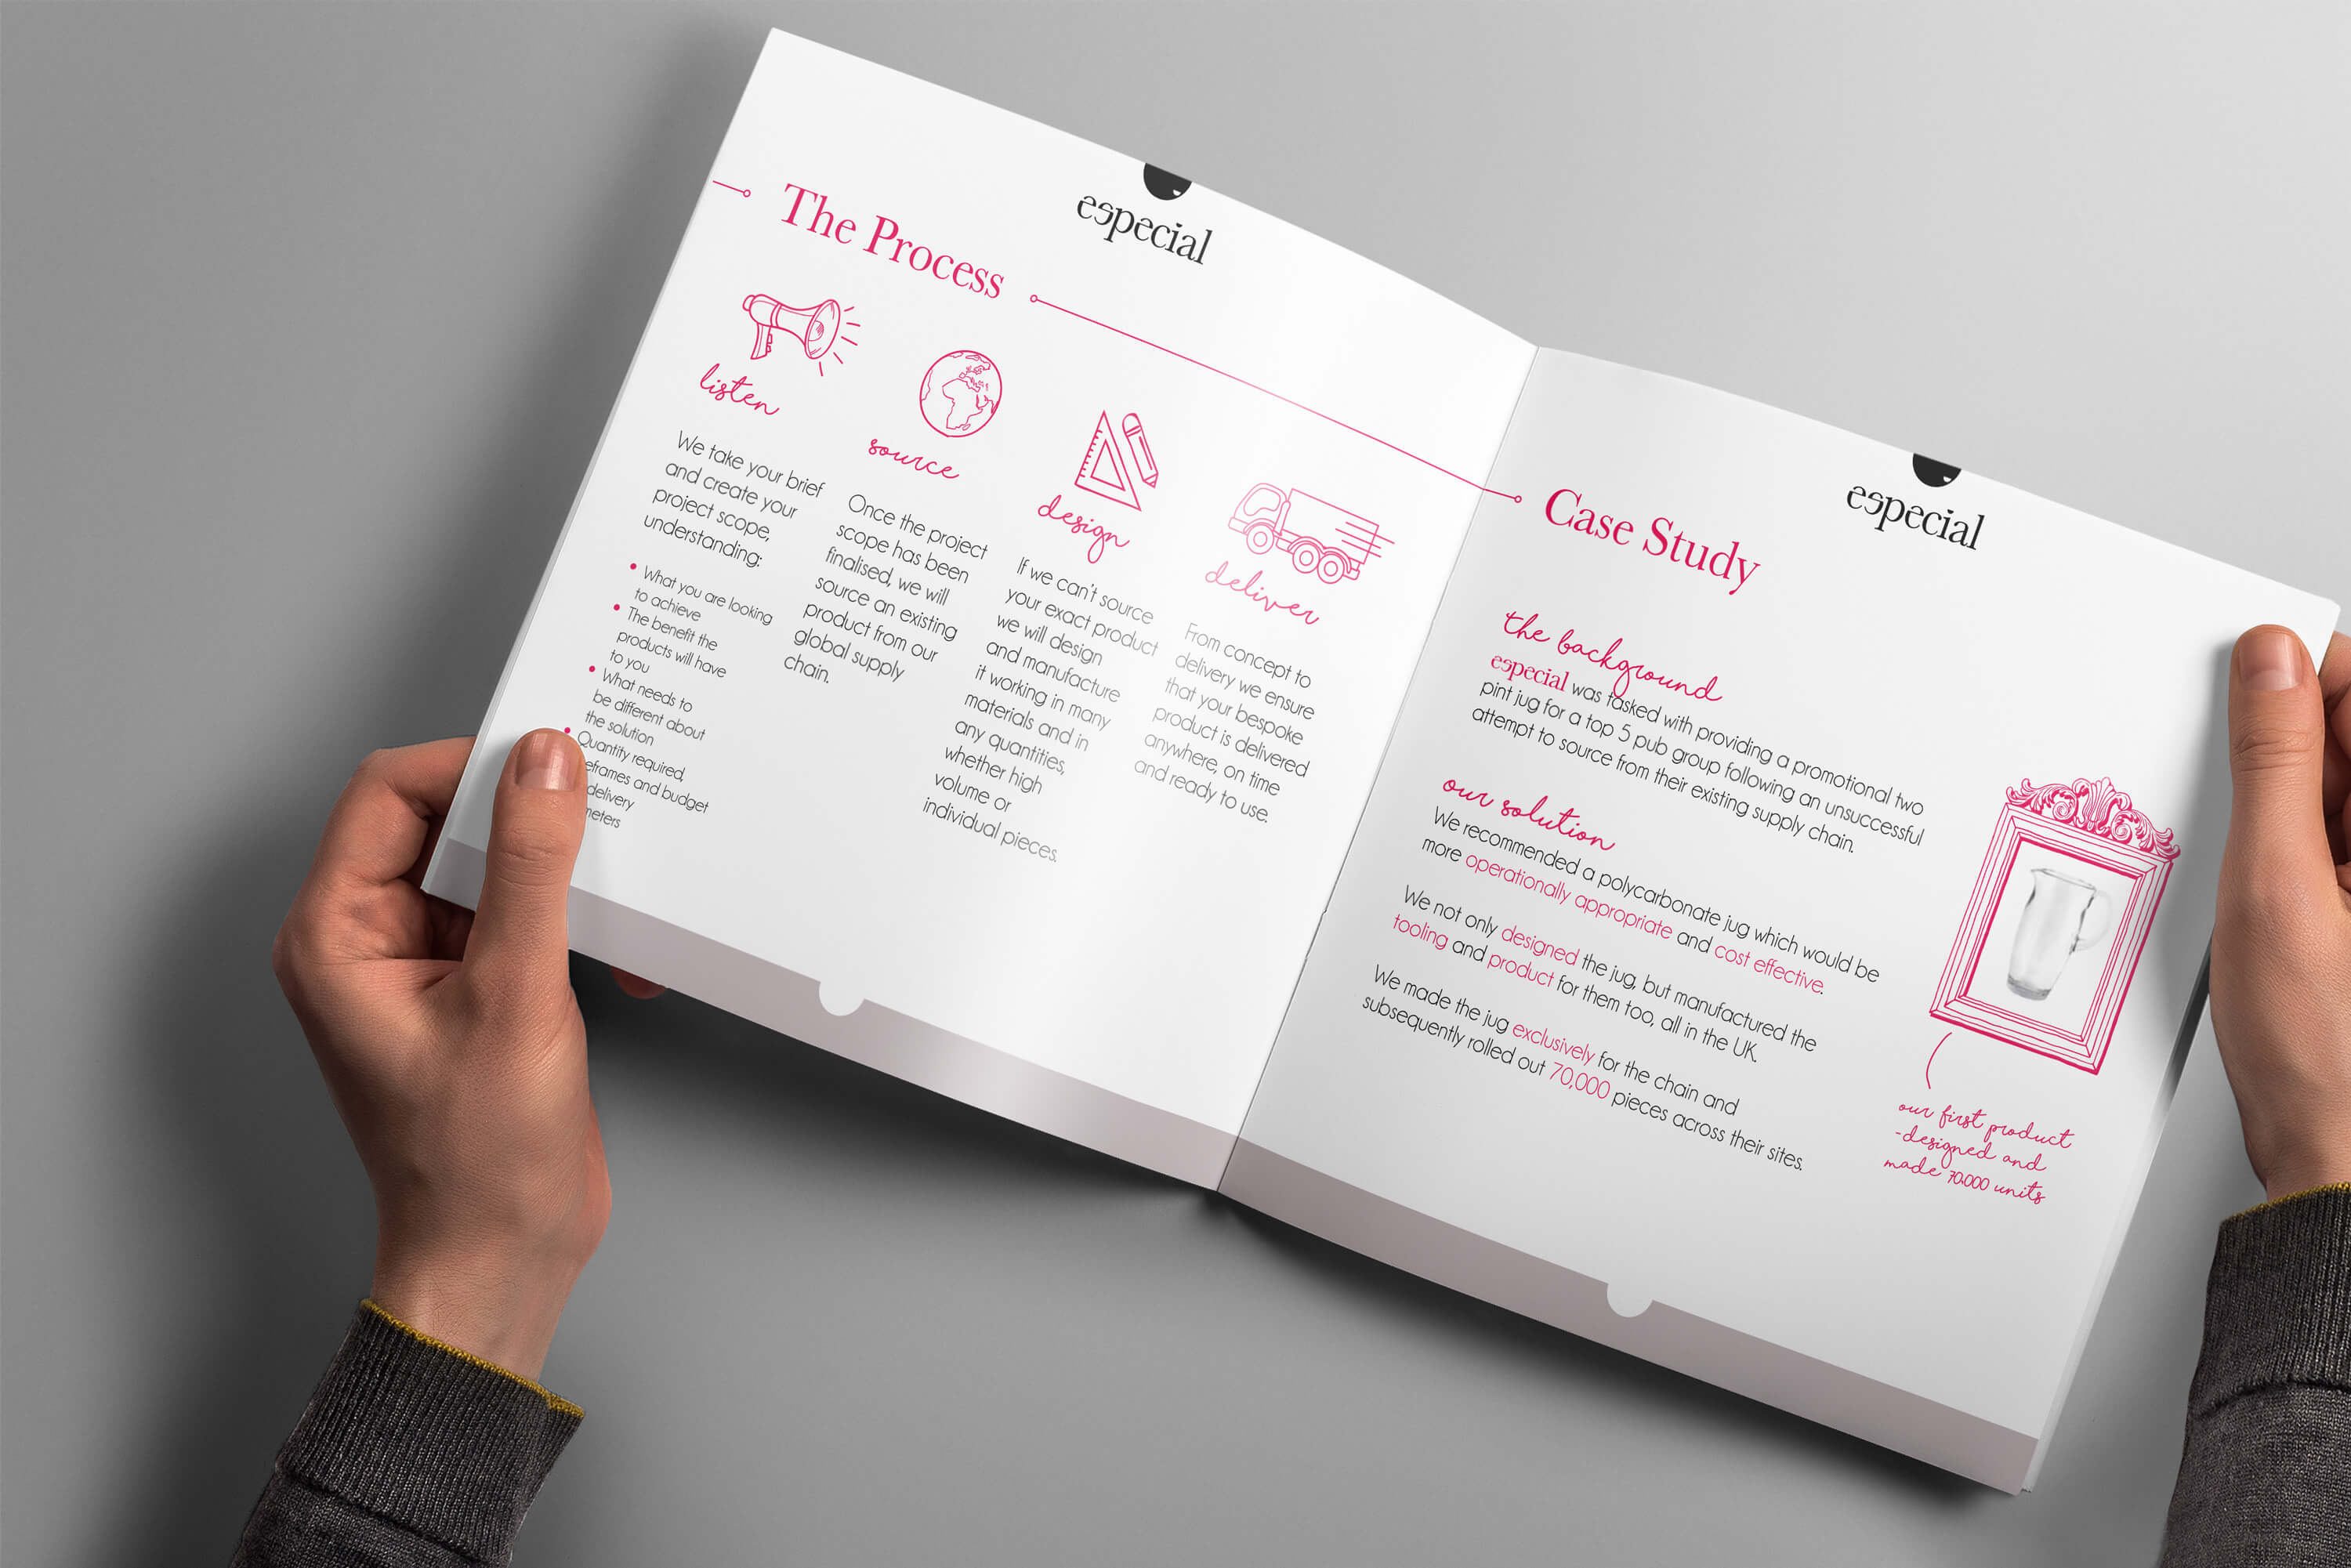 Especial Sourcing and Manufacturing brochure open to show process and case study pages